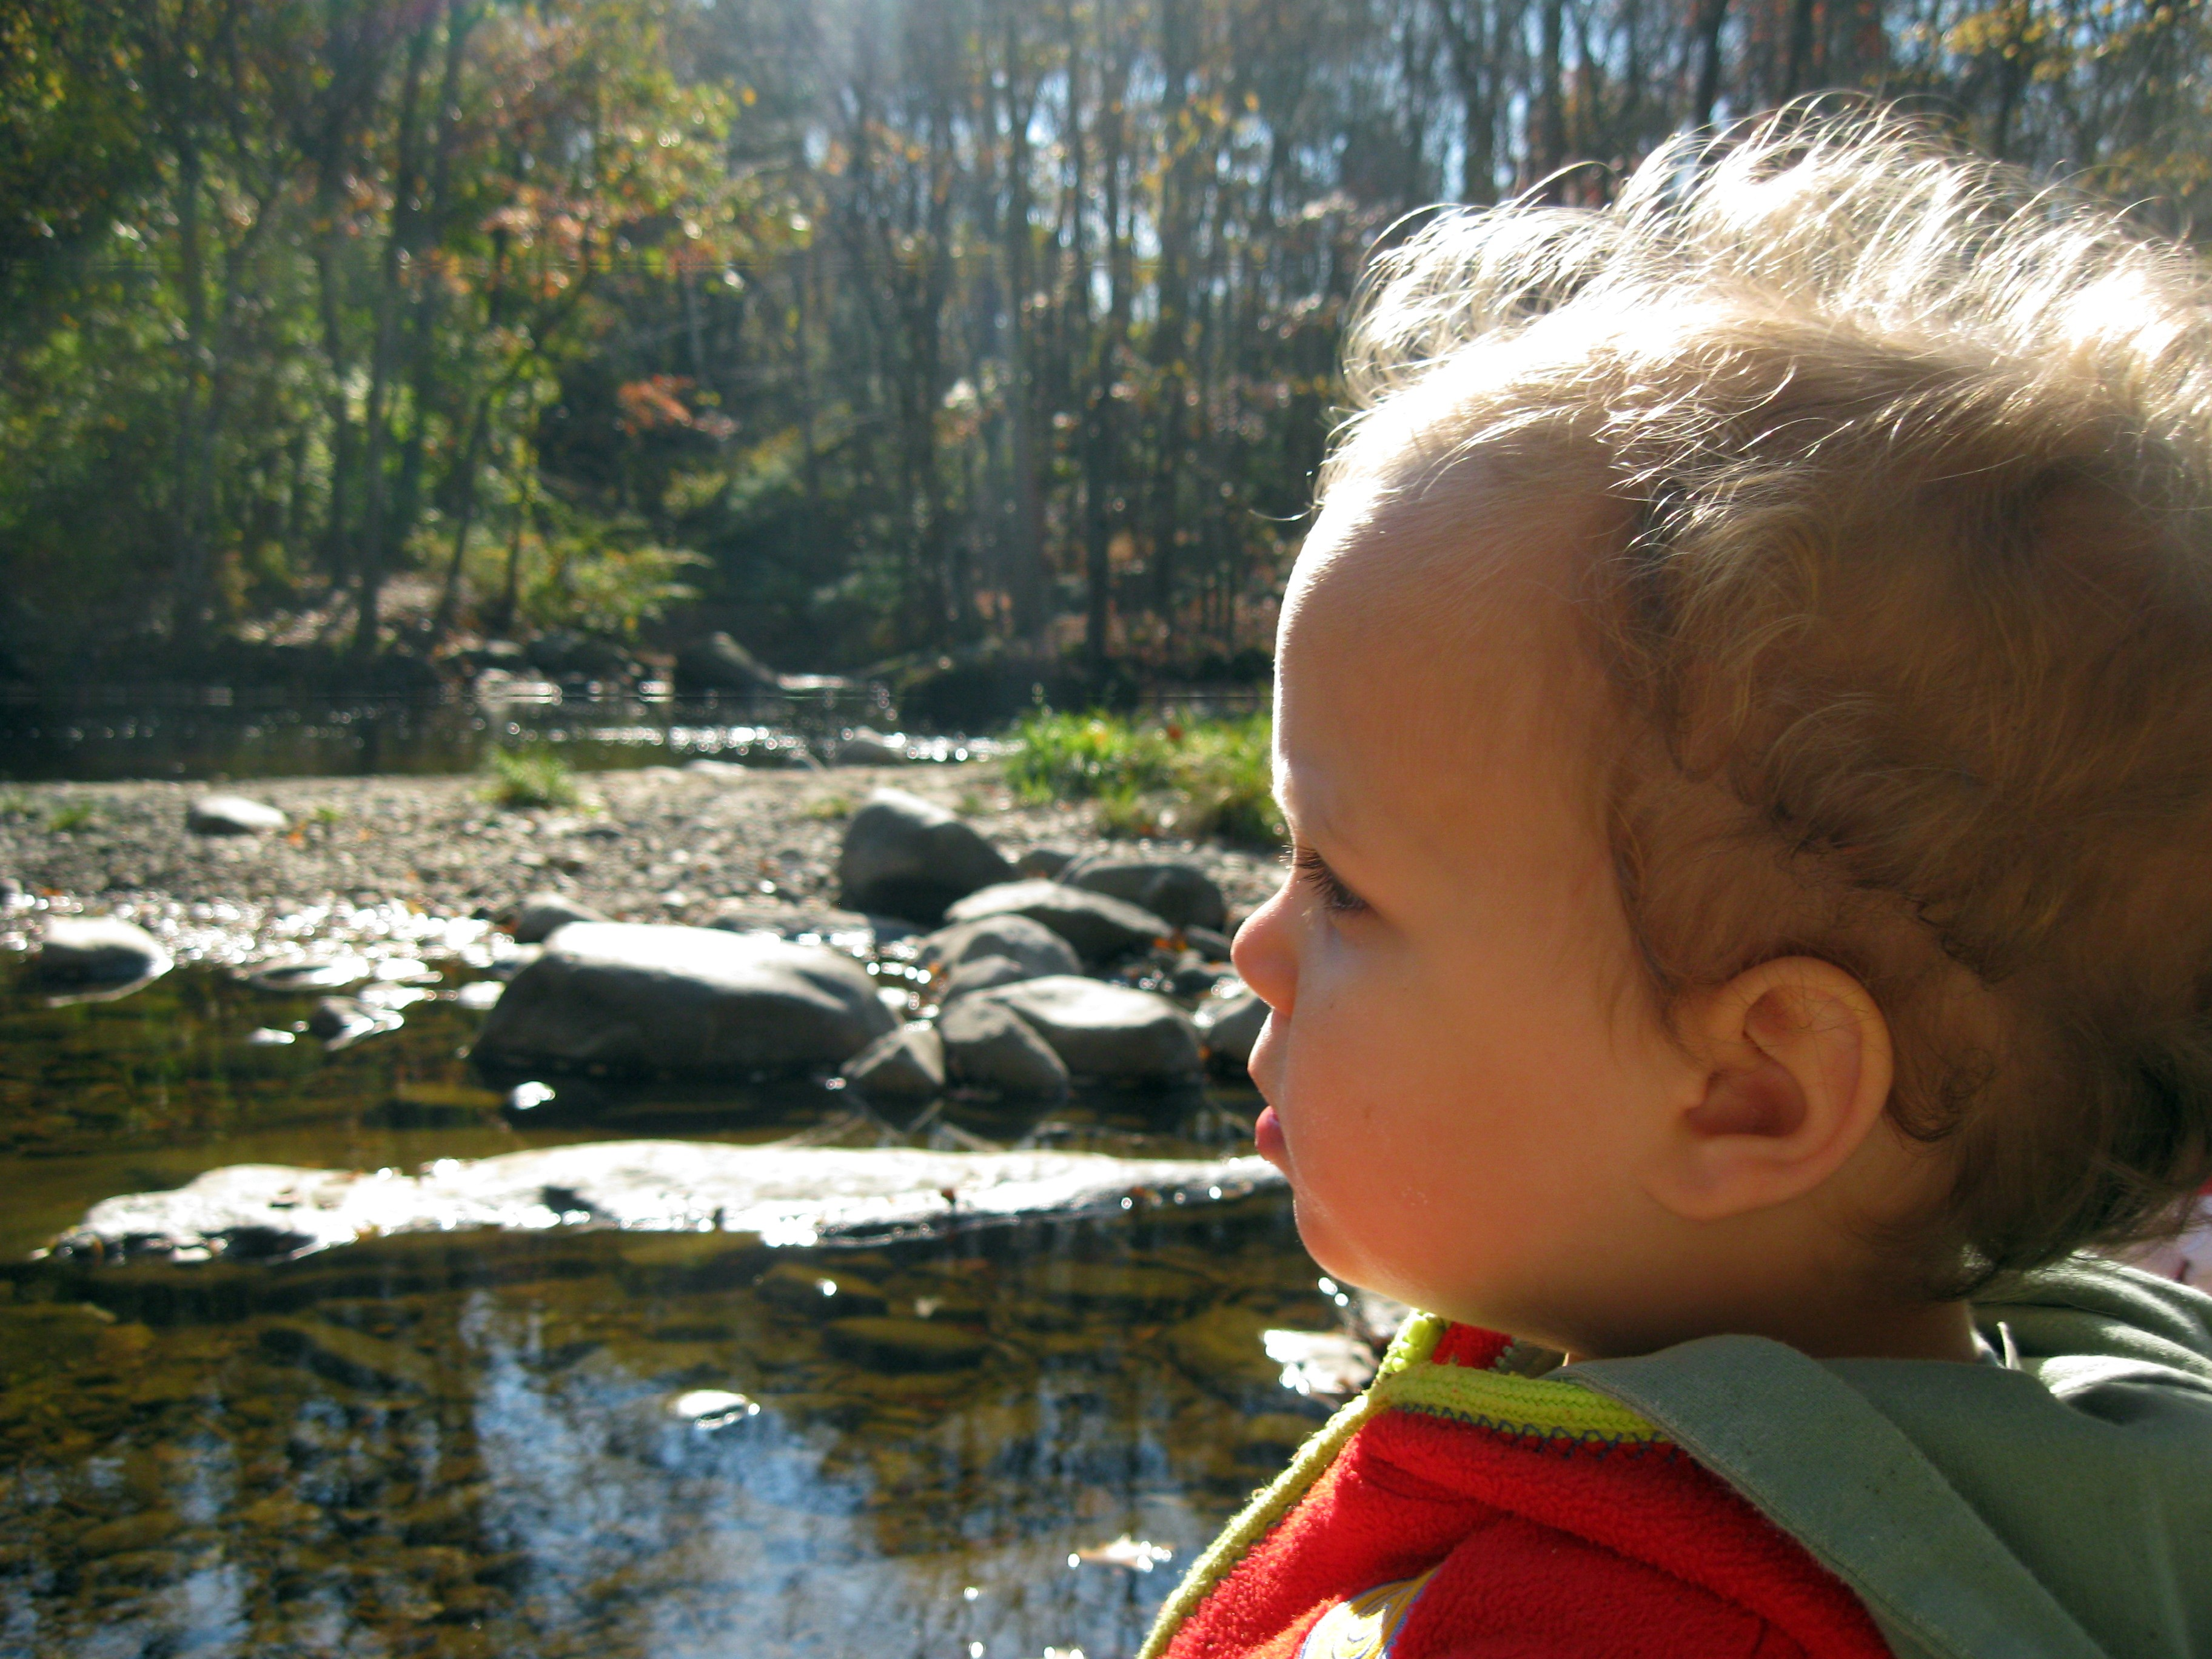 looking around the river